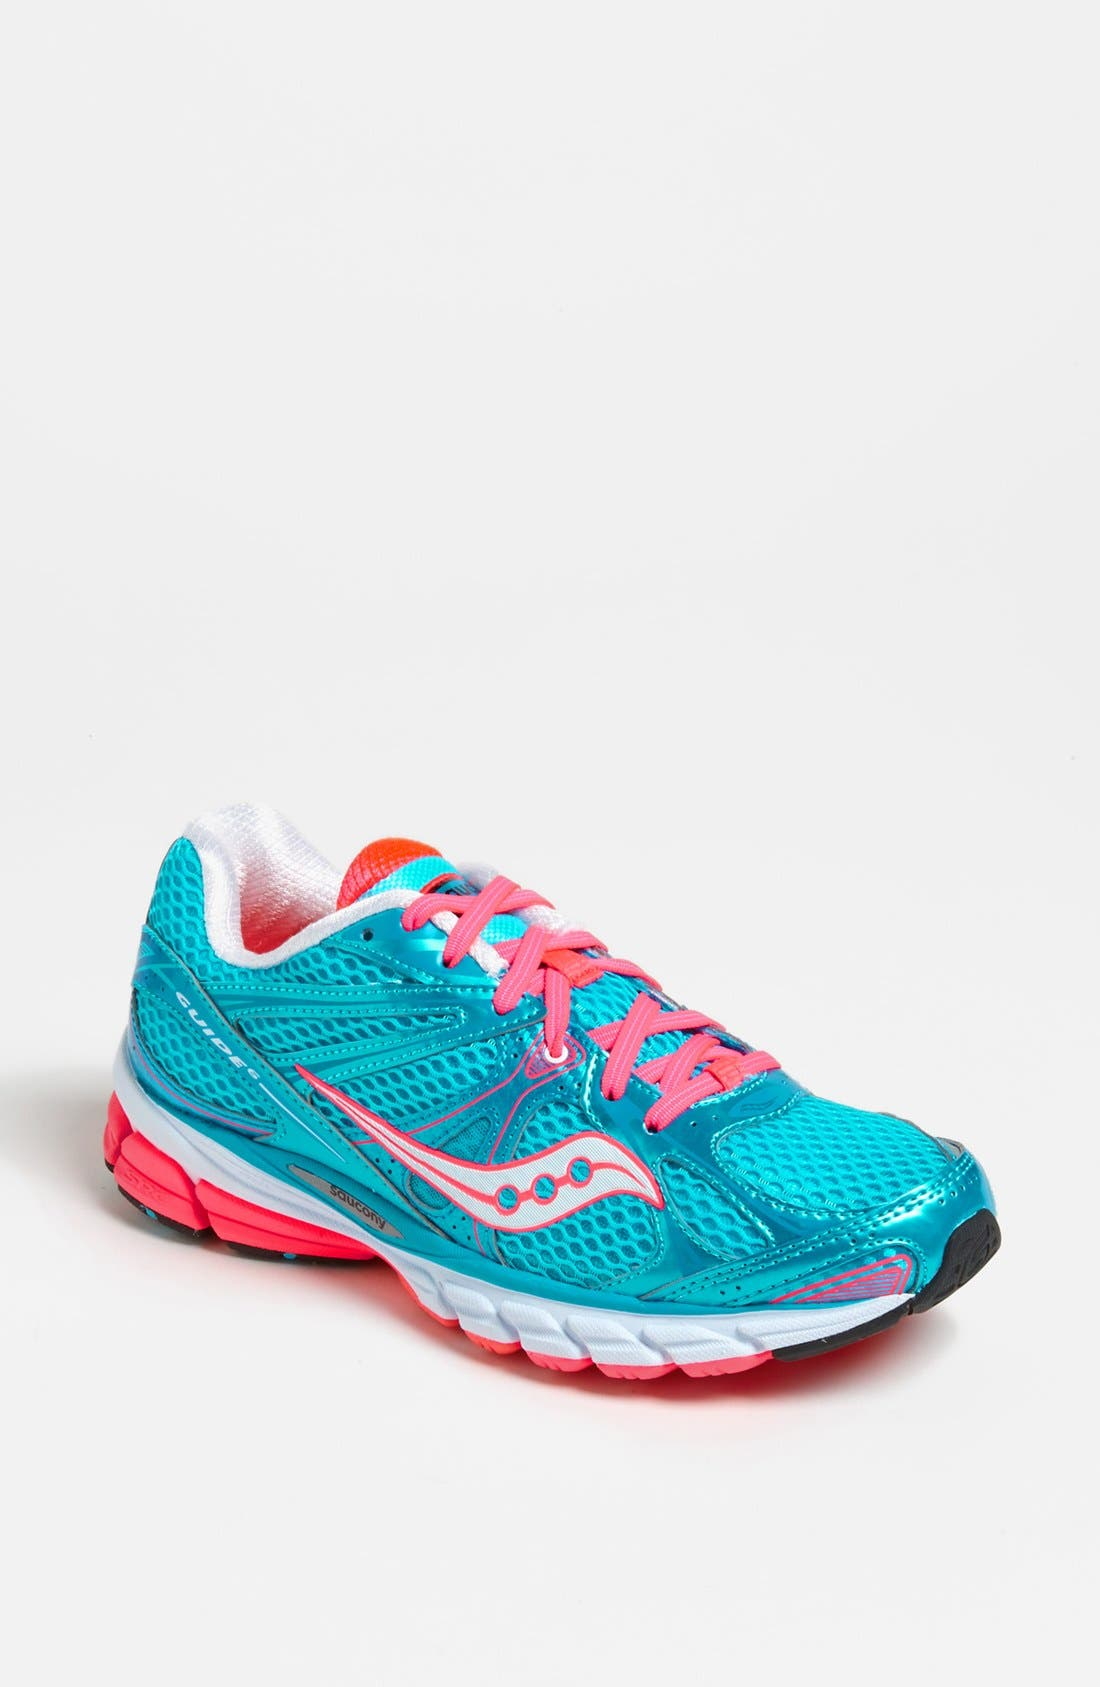 Main Image - SAUCONY GUIDE 6 RUNNING SHOE